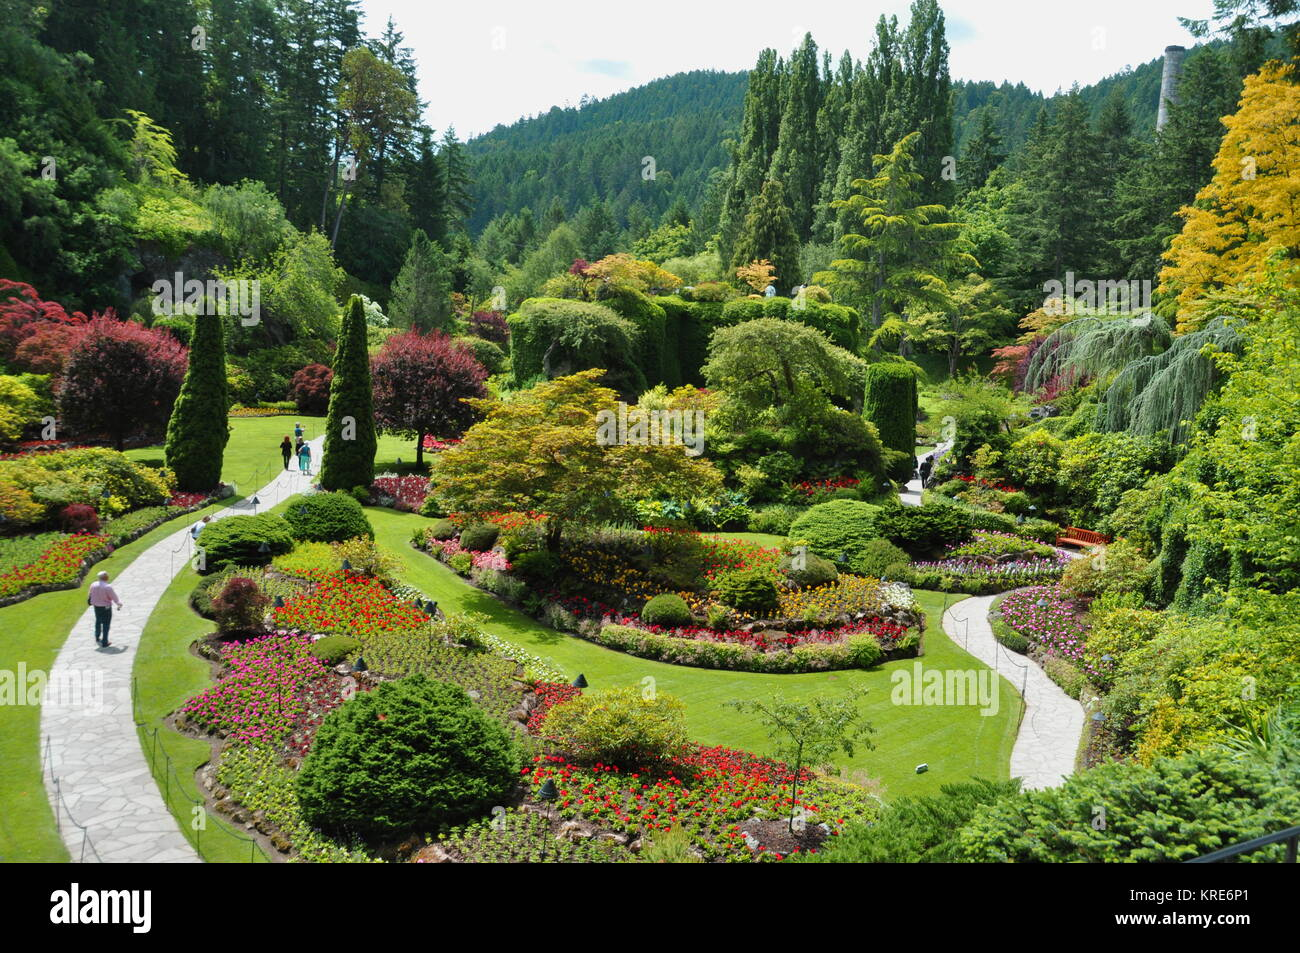 Butchart gardens people stock photos butchart gardens people stock the beautiful sunken gardens at the butchart gardens in victoria bccanada stock image thecheapjerseys